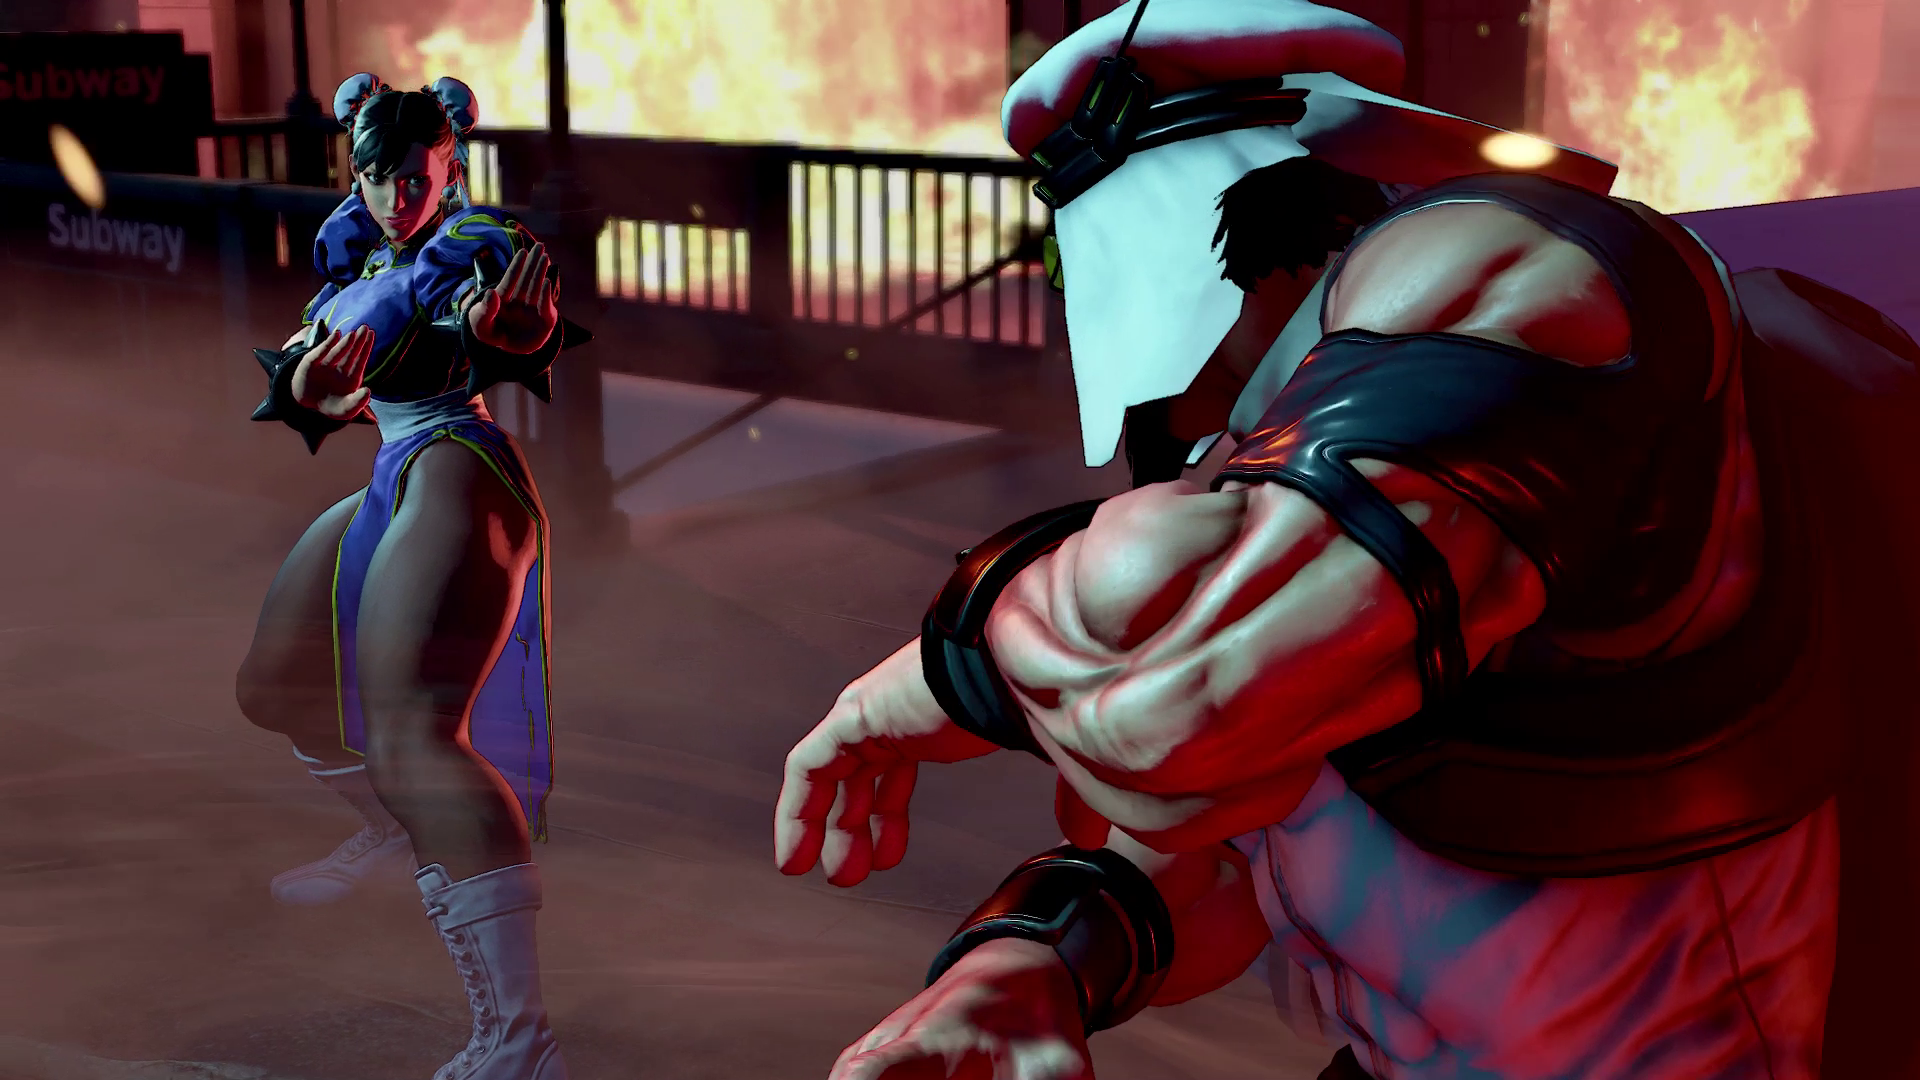 Street Fighter V' will feature the series' first full story mode